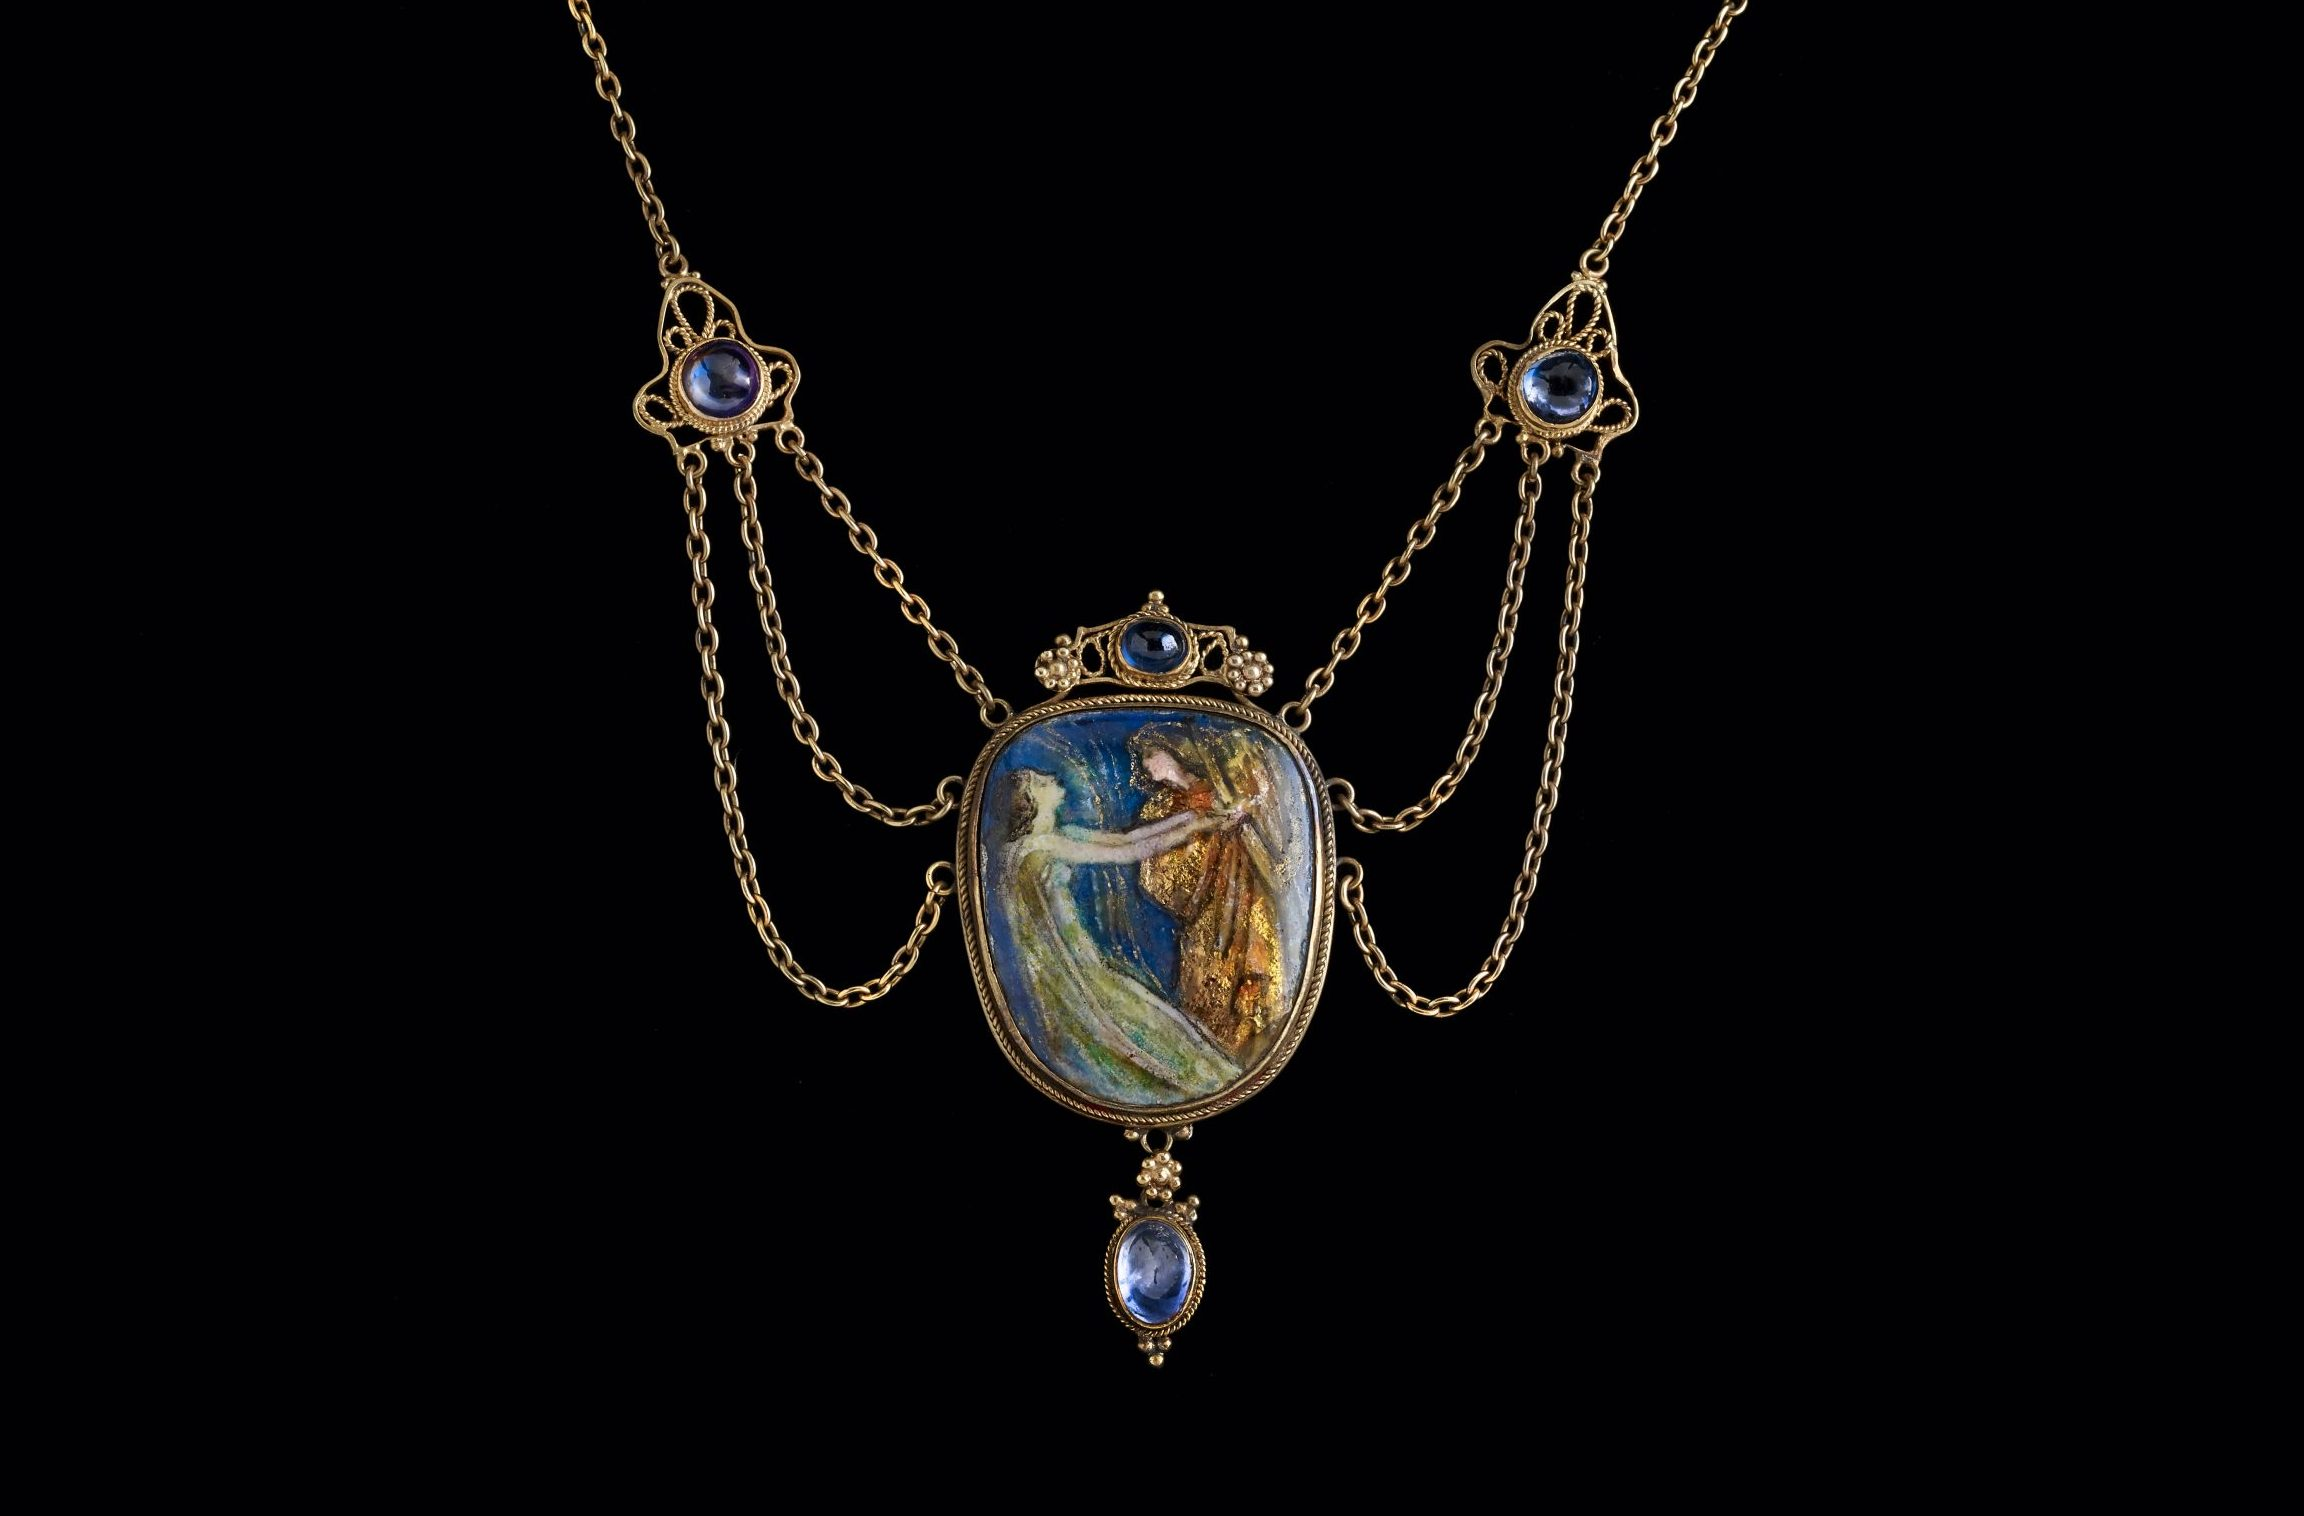 Inspired by Arts and Crafts principles, this necklace is attributed the Guild of Handicraft in London circa 1900. The overall design is ornate but has a palpable unity and the enameled image evokes days of yore. (© Artists Rights Society / ADAGP. Photo: John Faier, © The Richard H. Driehaus Museum.)